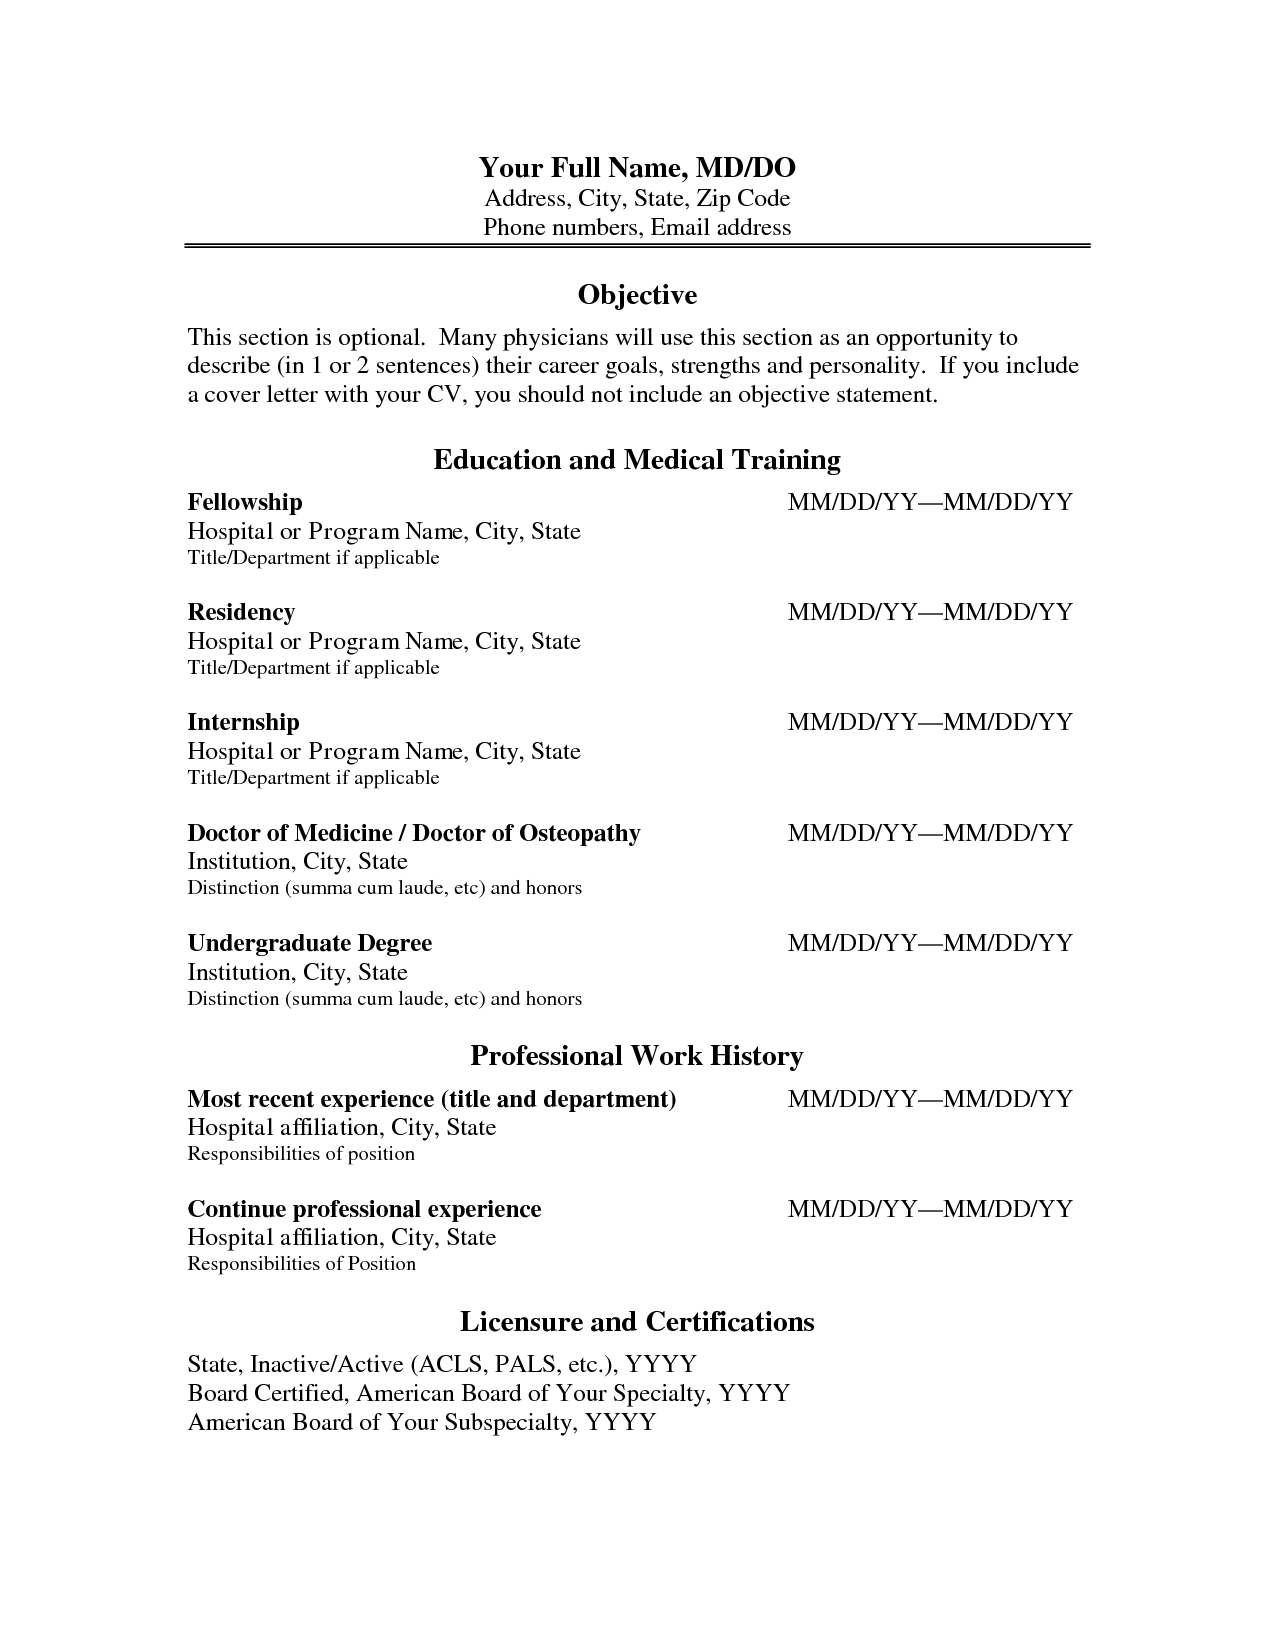 Templates For Curriculum Vitae Cv Format Physician Physician Assistant Resume And Curriculum